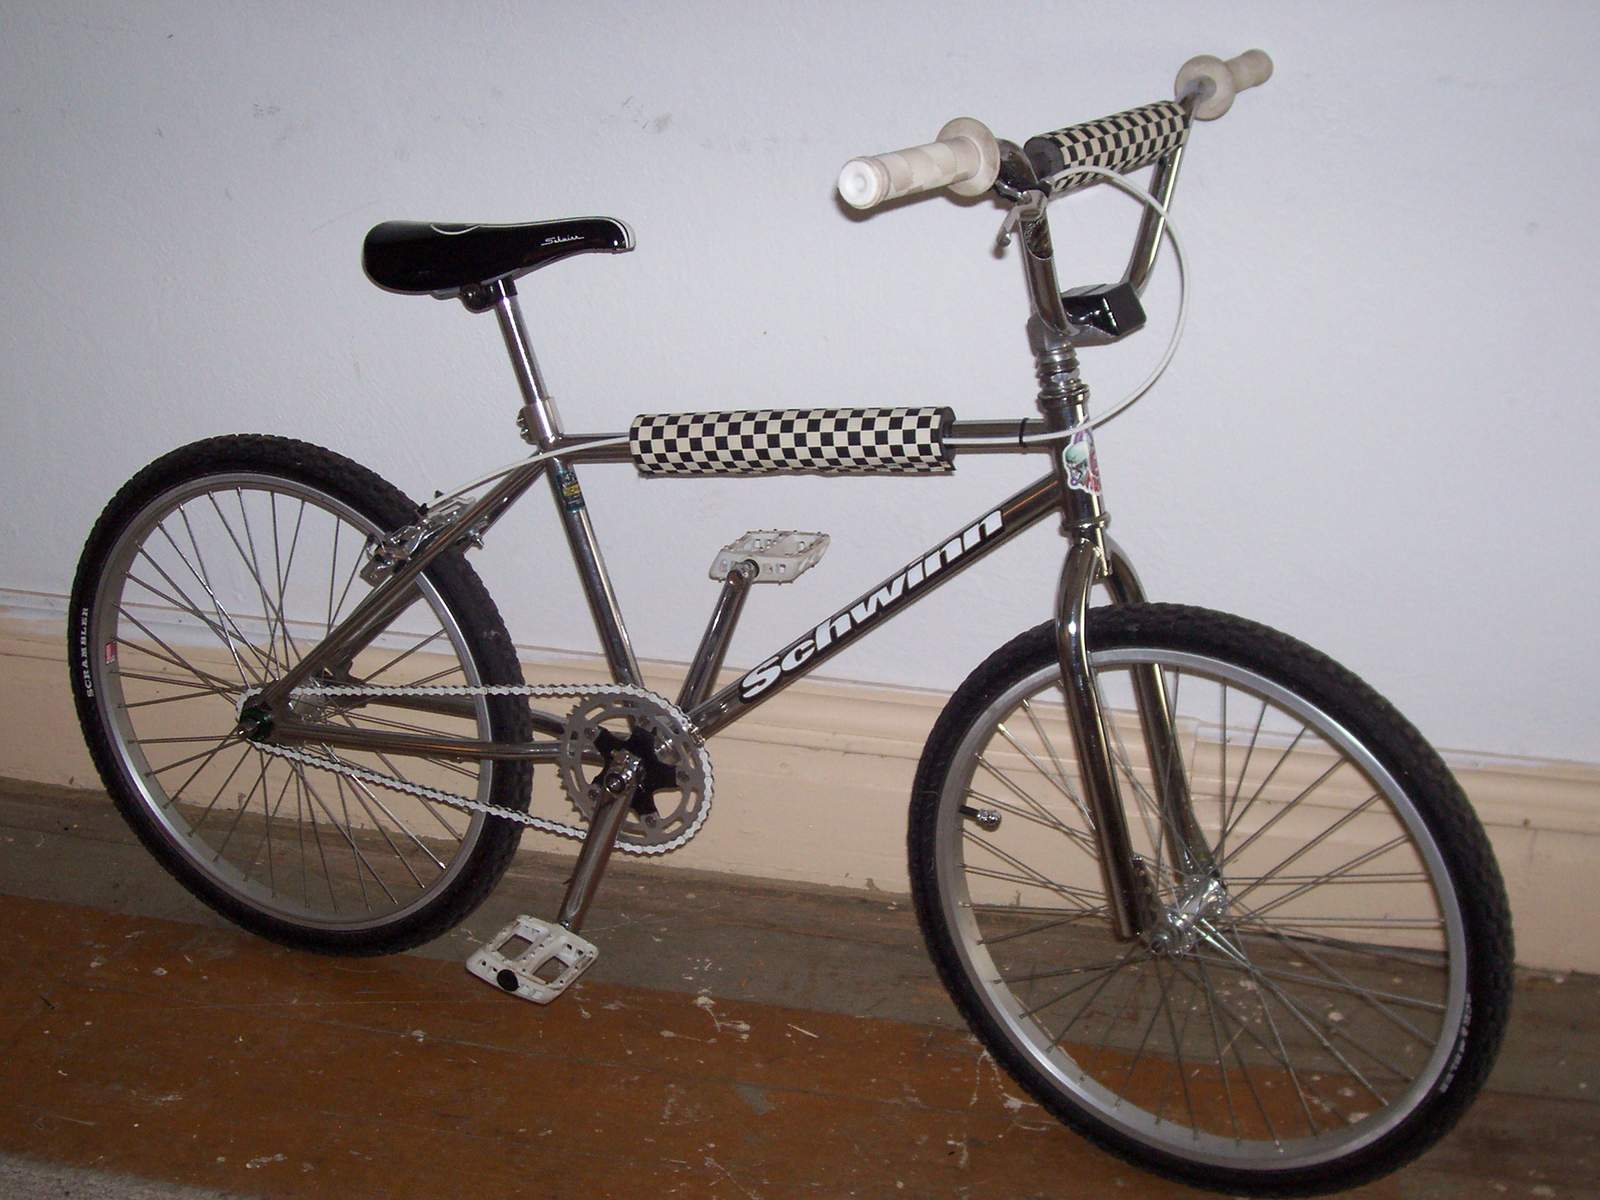 https://s3.amazonaws.com/uploads.bmxmuseum.com/user-images/61851/100_967859a070cd88.jpg